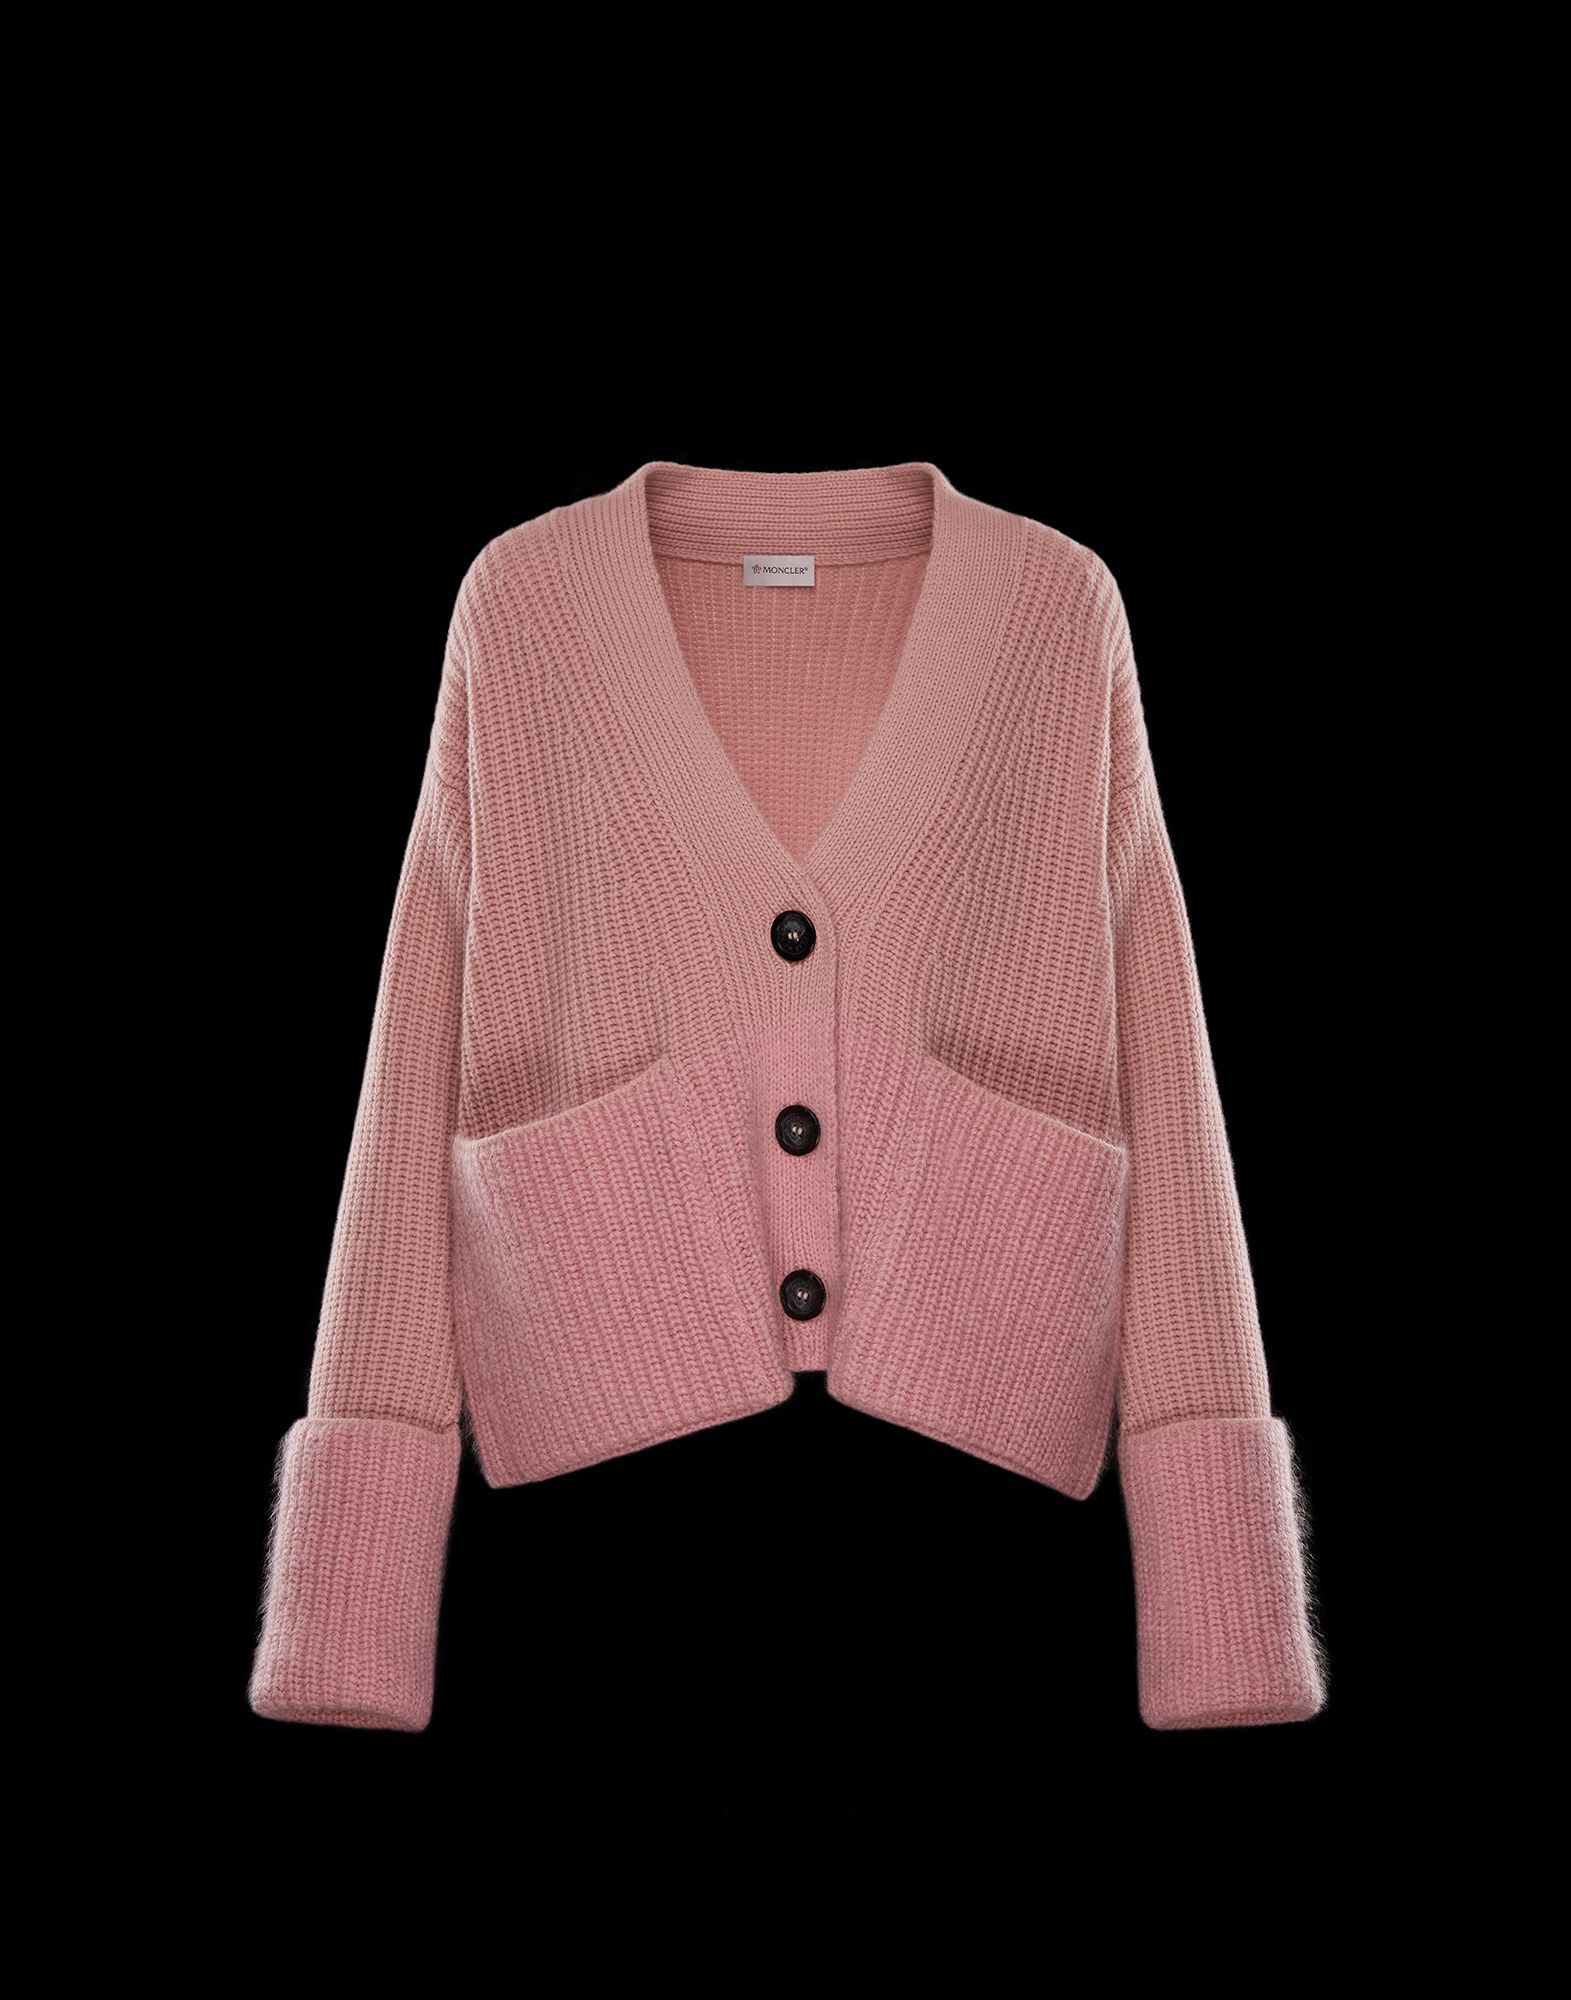 sale retailer c8730 74024 moncler@#$99 on in 2019 | fashion trends | Knitted jackets ...